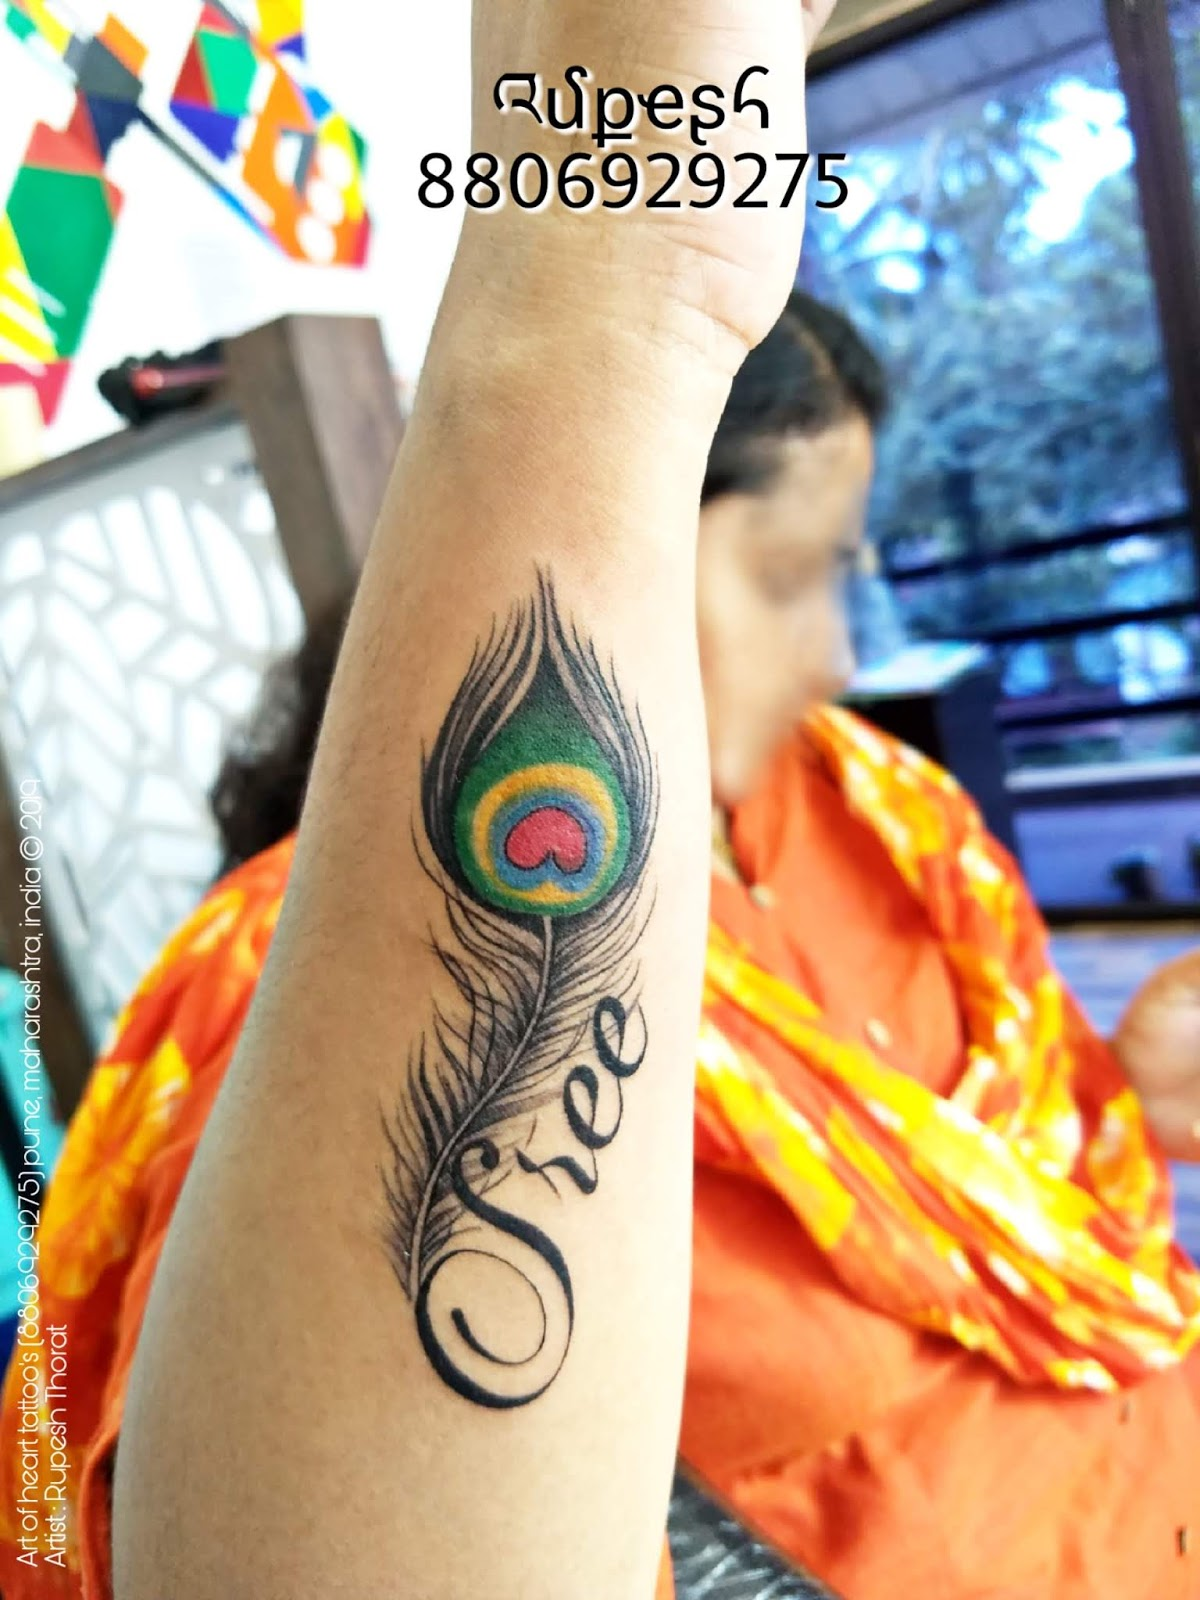 Art Of Heart Tattoo S Peacock Feather Tattoo Design Done By Art Of Heart Tattoo S Pune Maharashtra Artist Rupesh Thorat